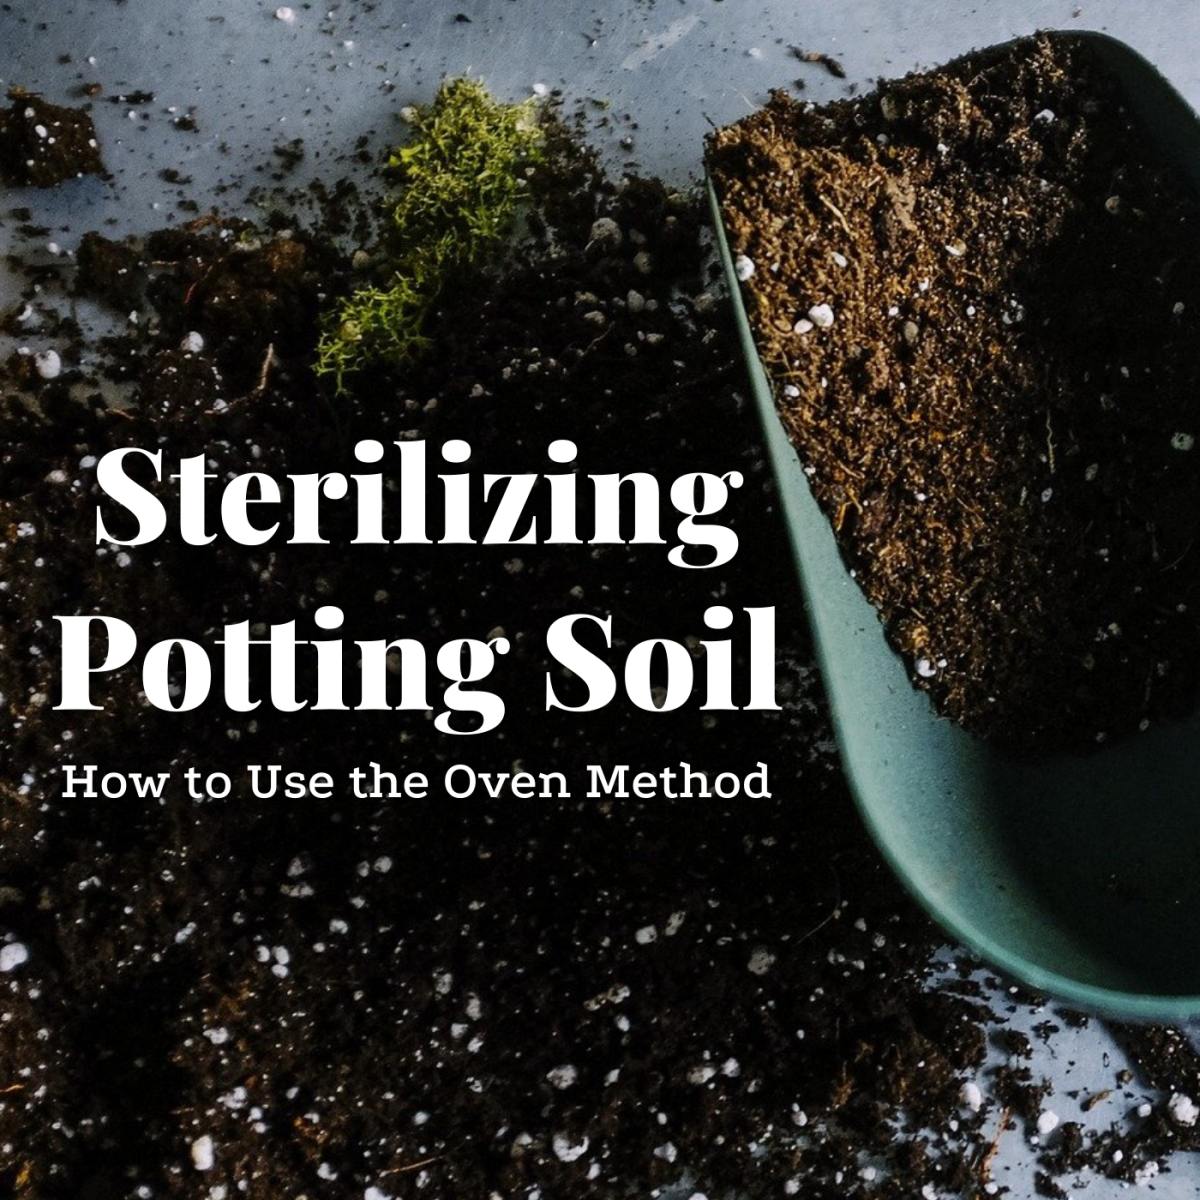 Learn how to ensure your potting soil is pest-free by baking it in your oven.